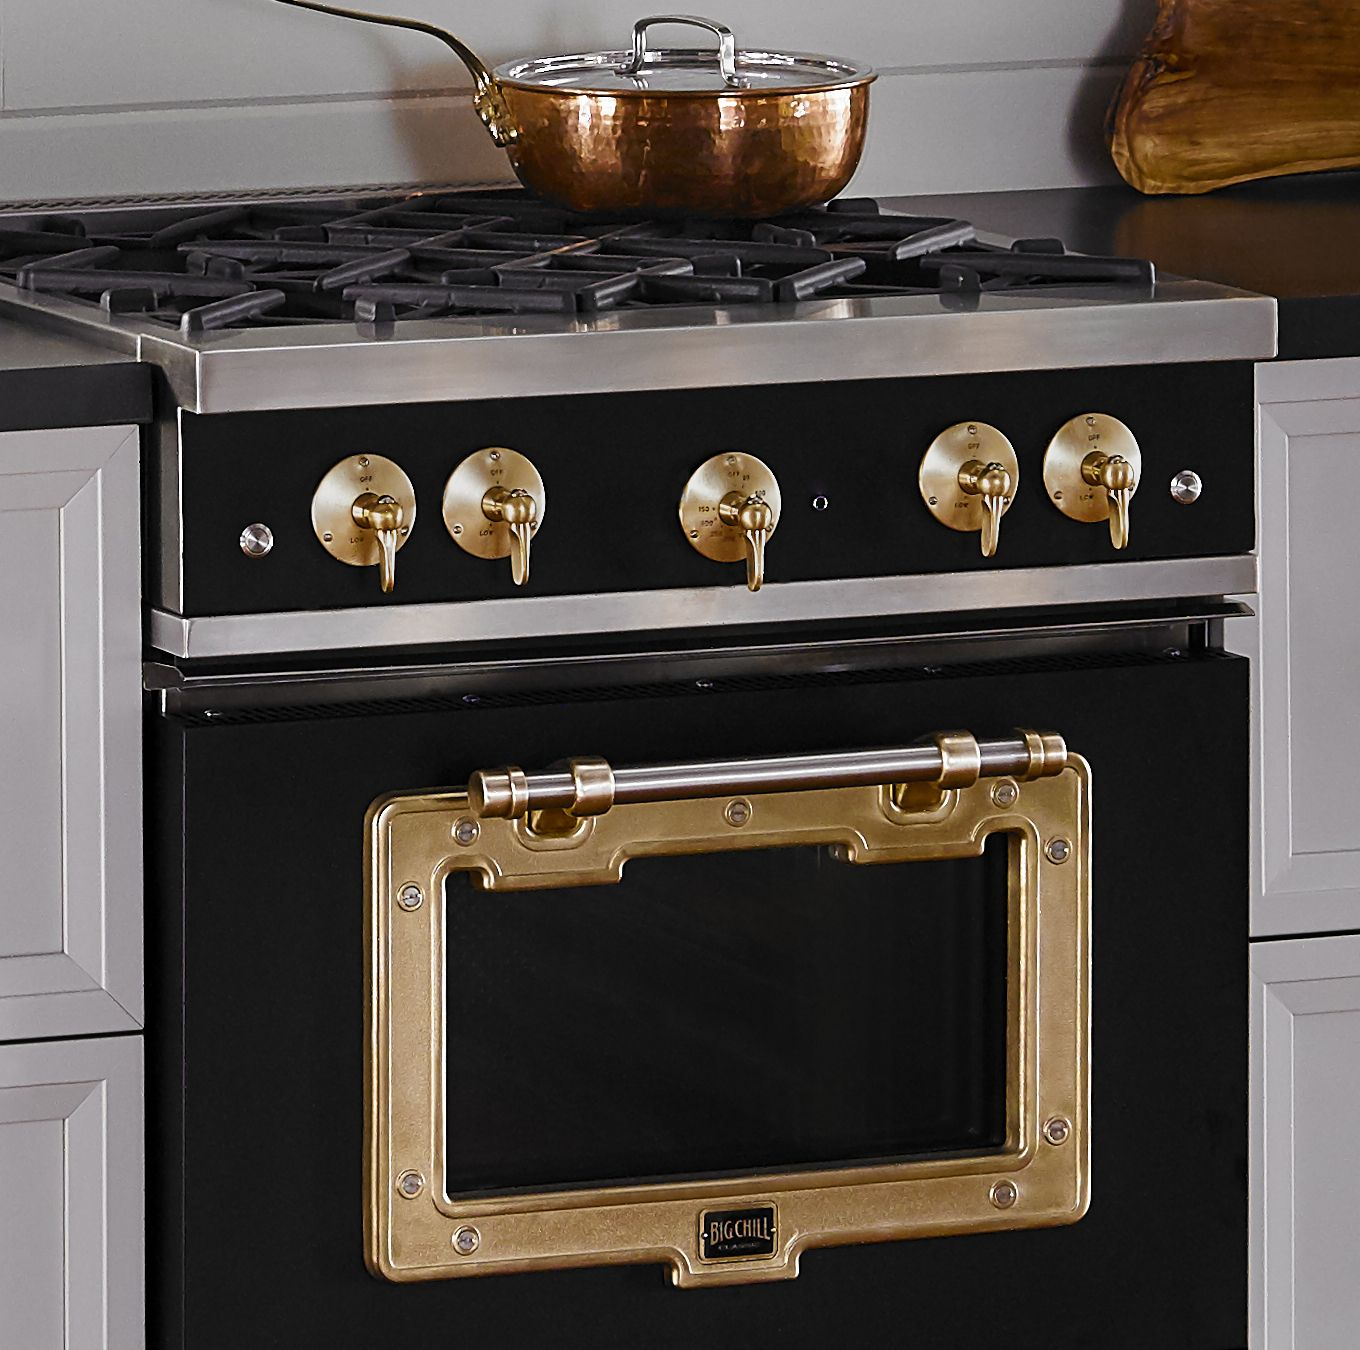 1900 Series Classic Oven